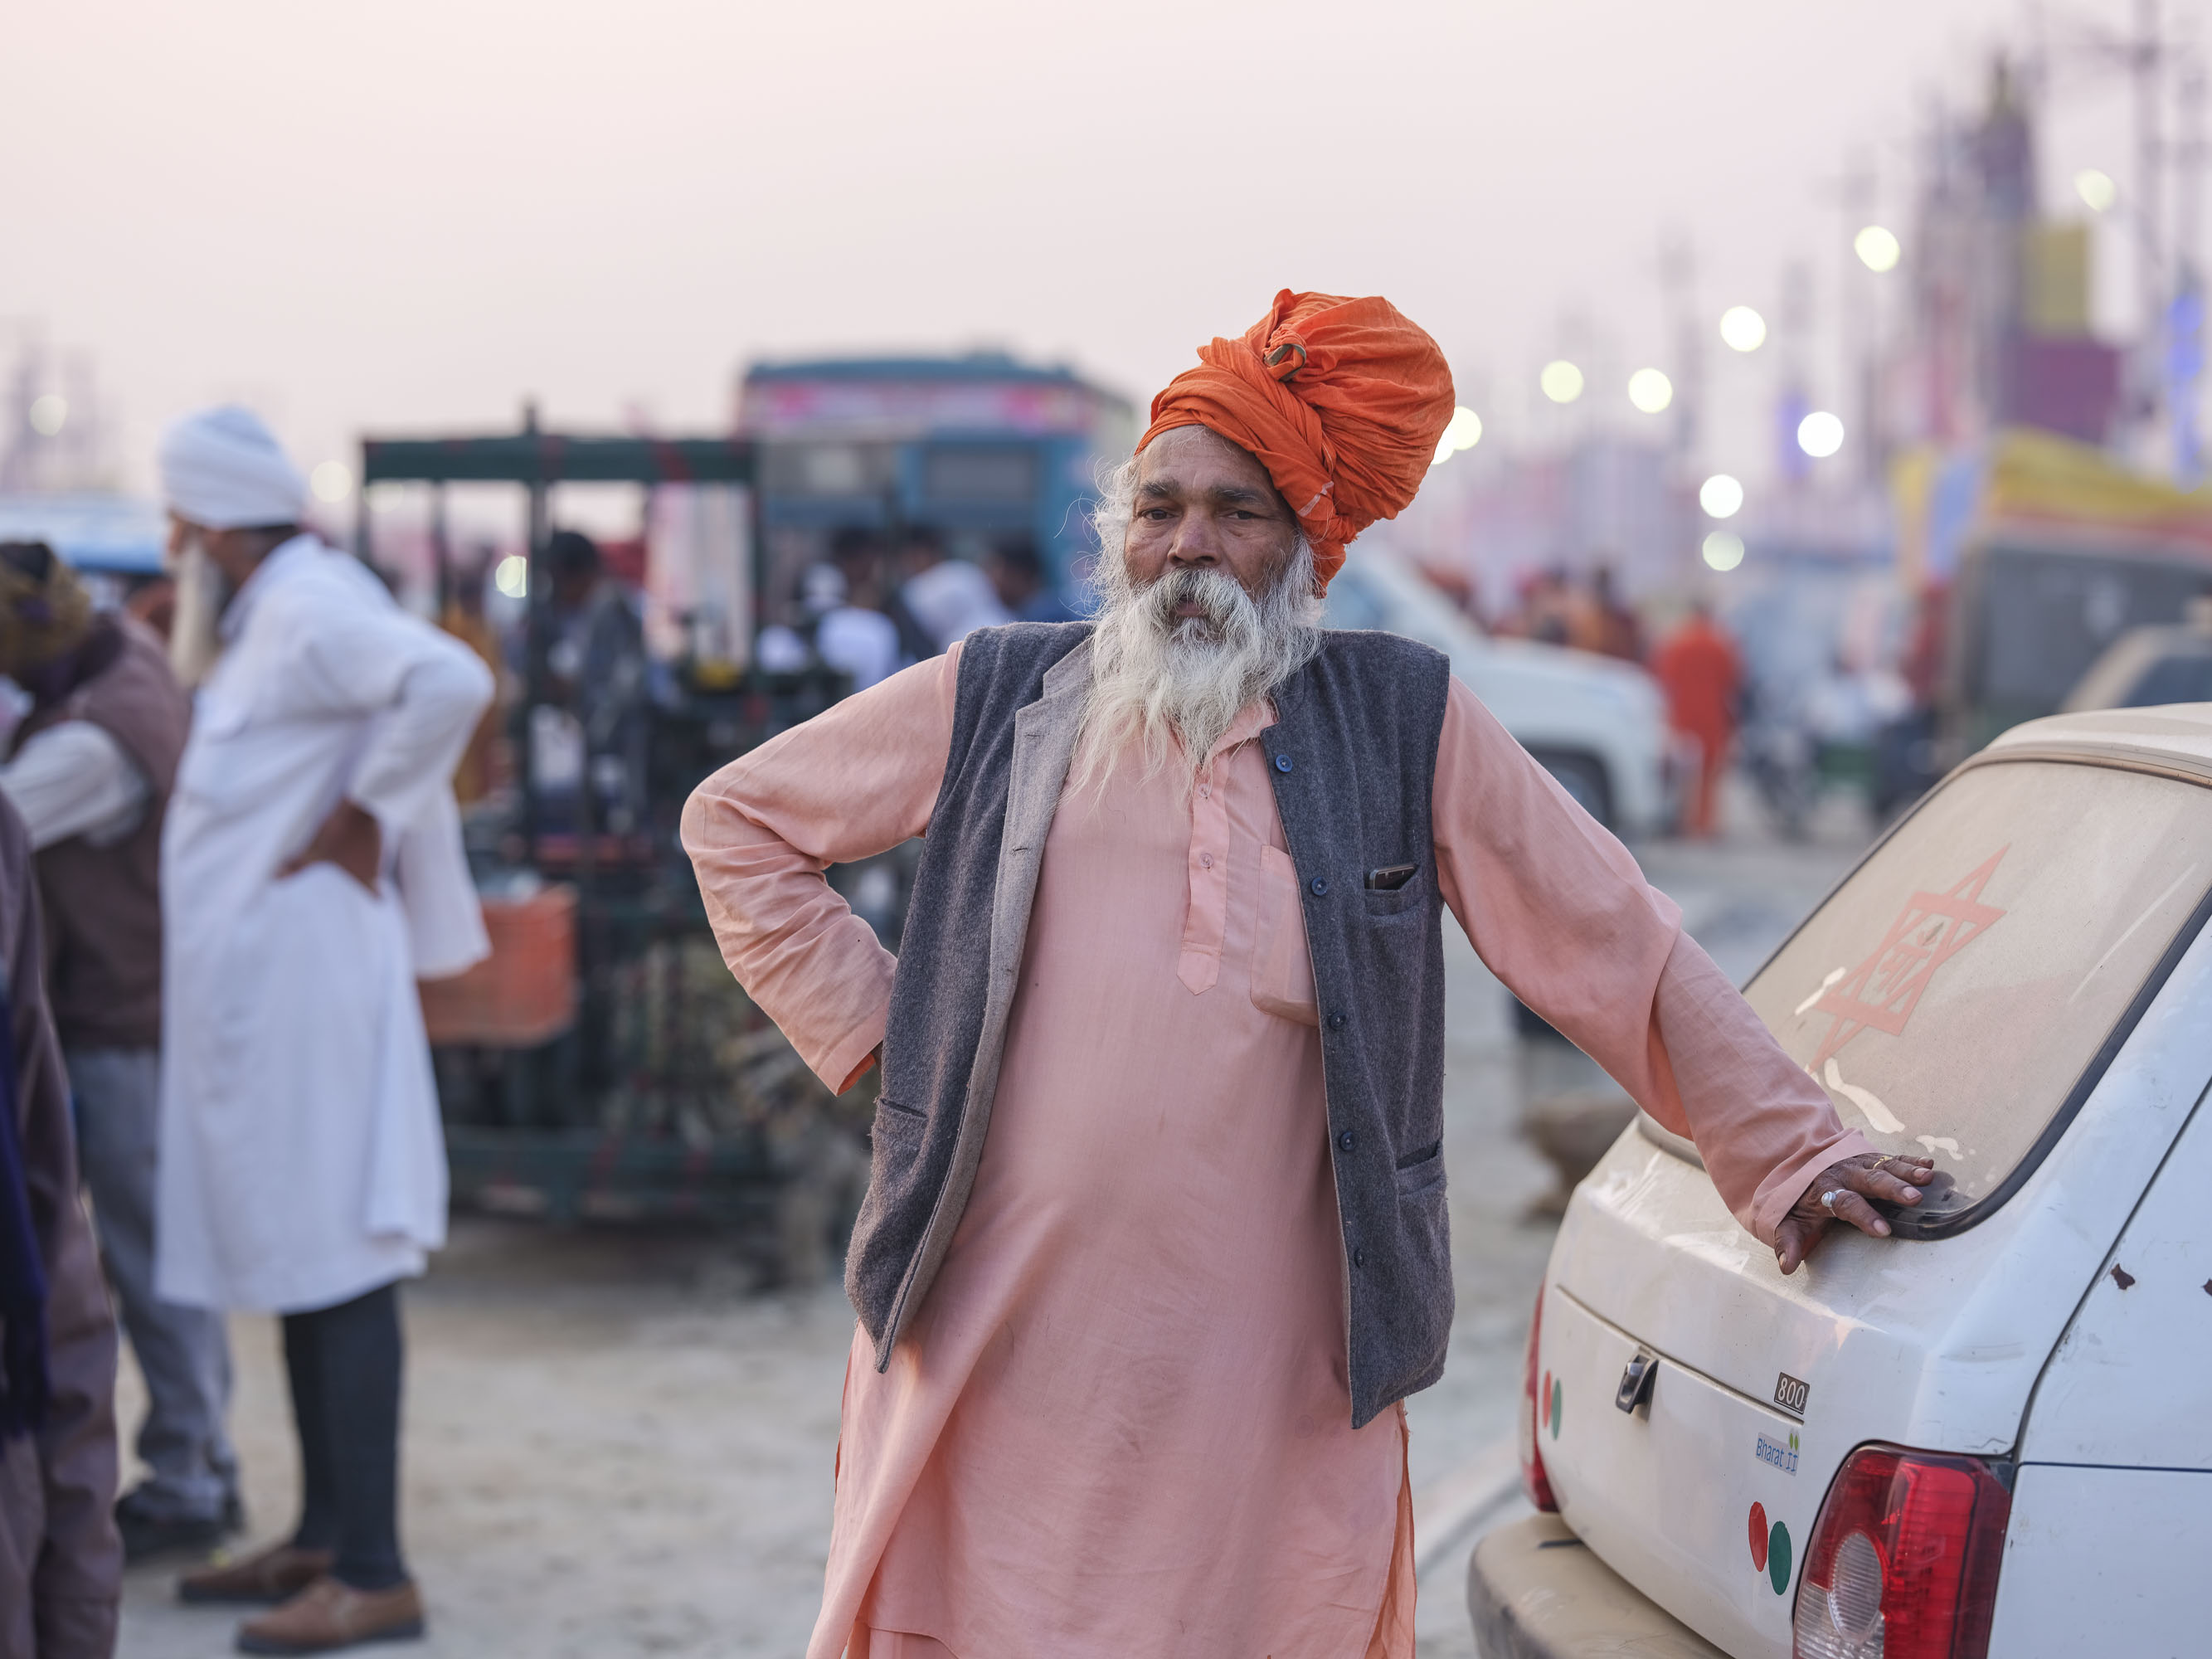 market camp pilgrims Kumbh mela 2019 India Allahabad Prayagraj Ardh hindu religious Festival event rivers photographer jose jeuland photography